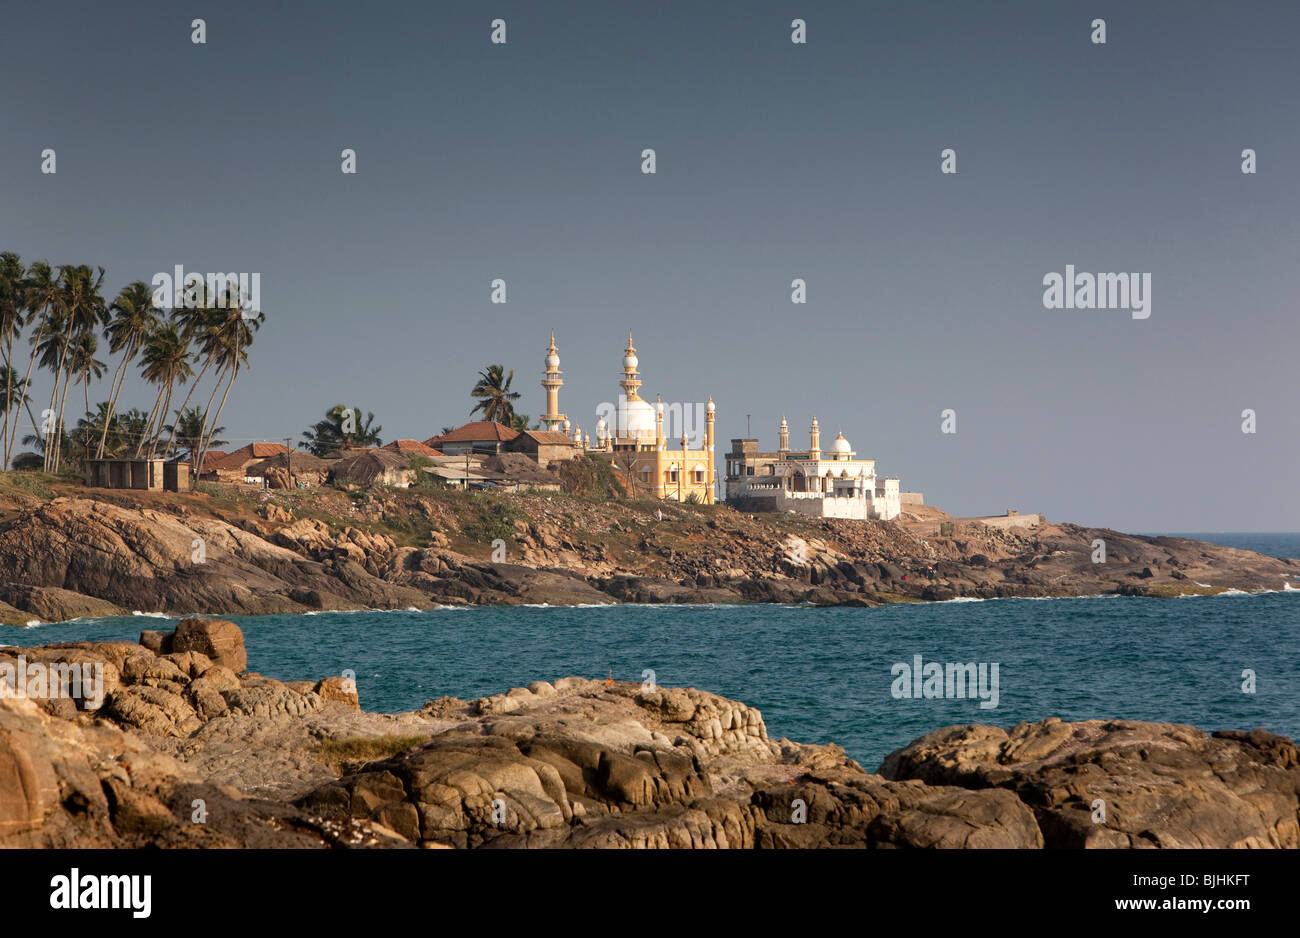 India, Kerala, Kovalam, Vizhinjam village mosques across the bay from lighhouse - Stock Image